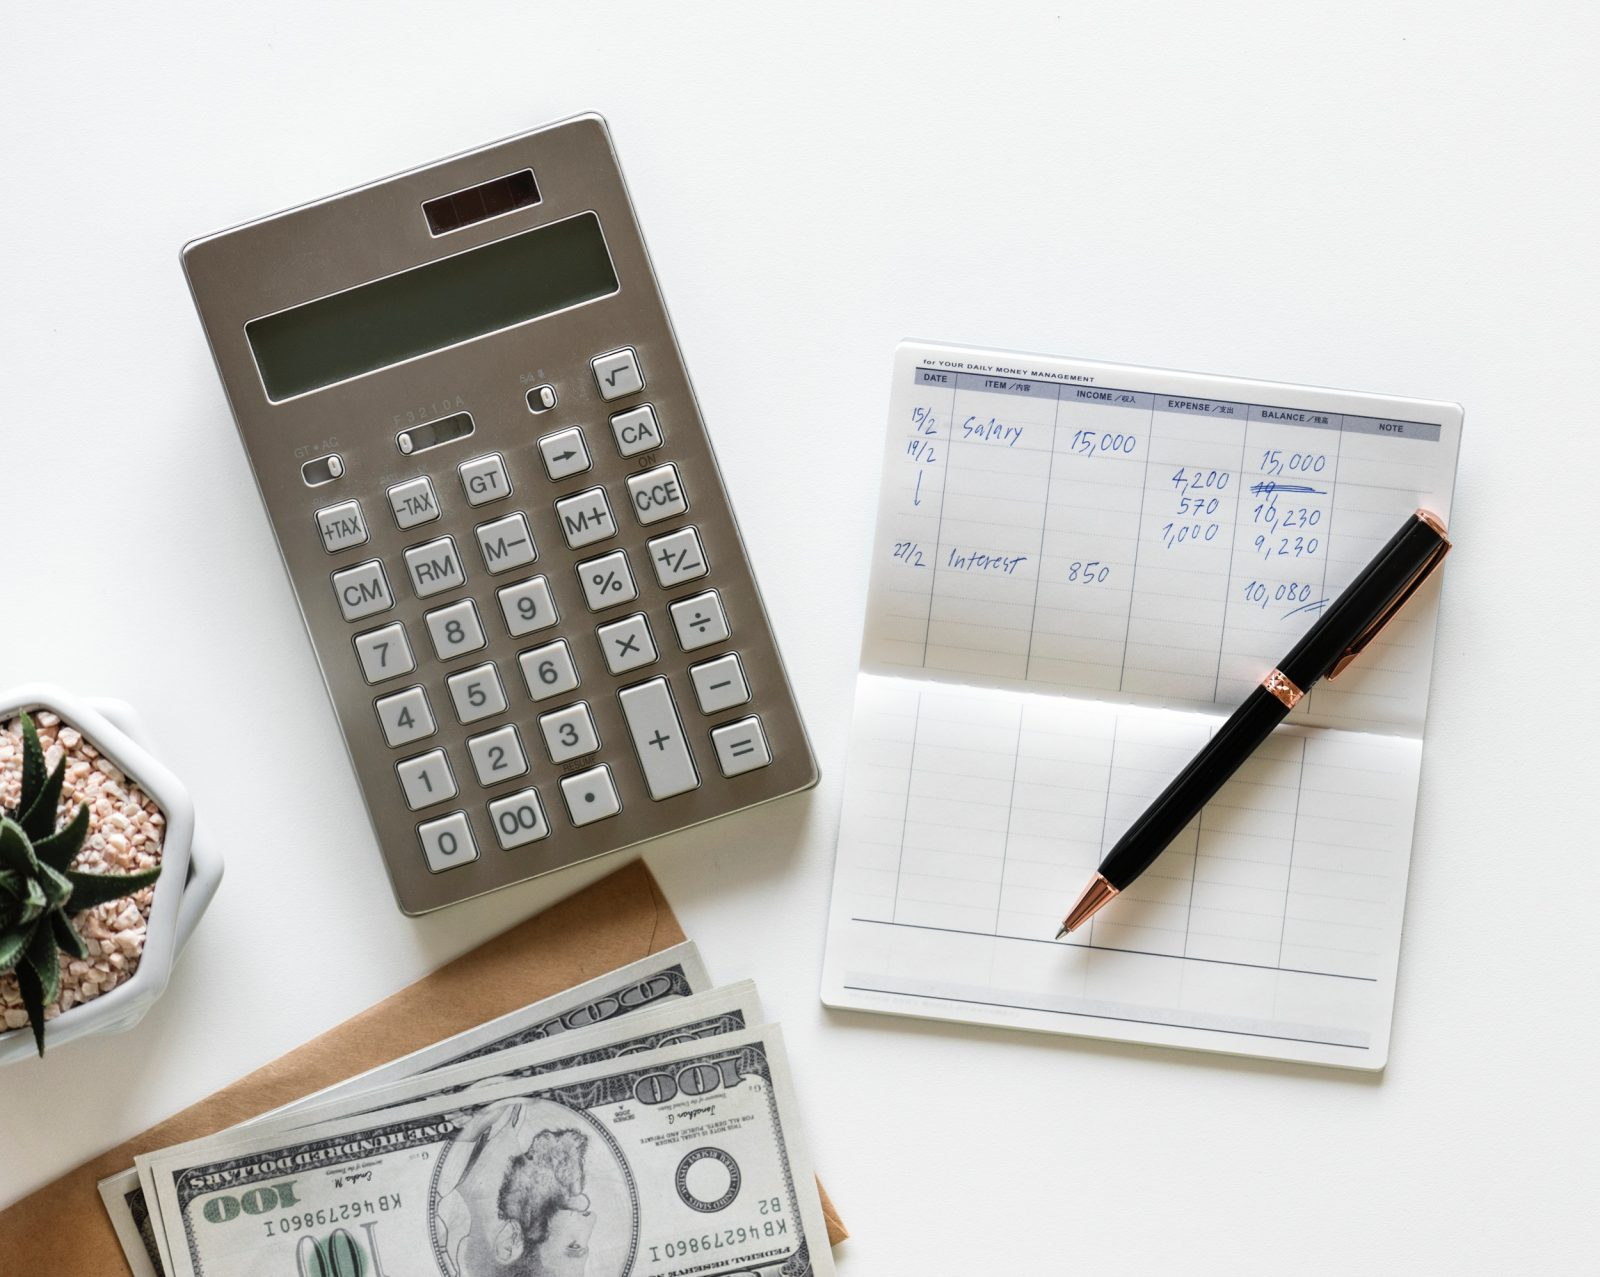 Are you facing a cash flow crisis? If money isn't flowing as smoothly as you need, here are some options to free up some cash and get your accounts back to black.